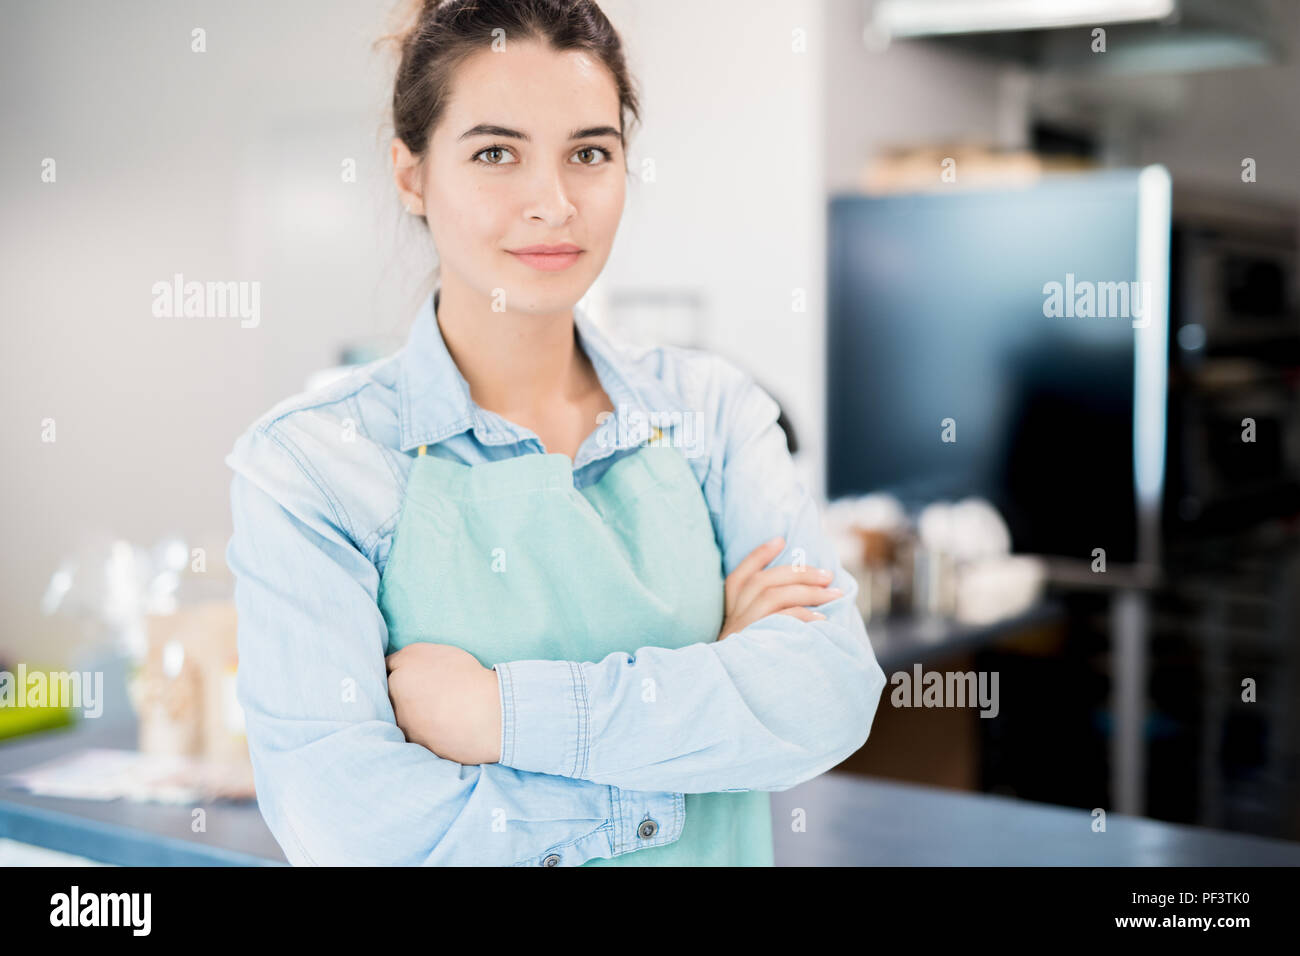 Hispanic Cafe Owner - Stock Image